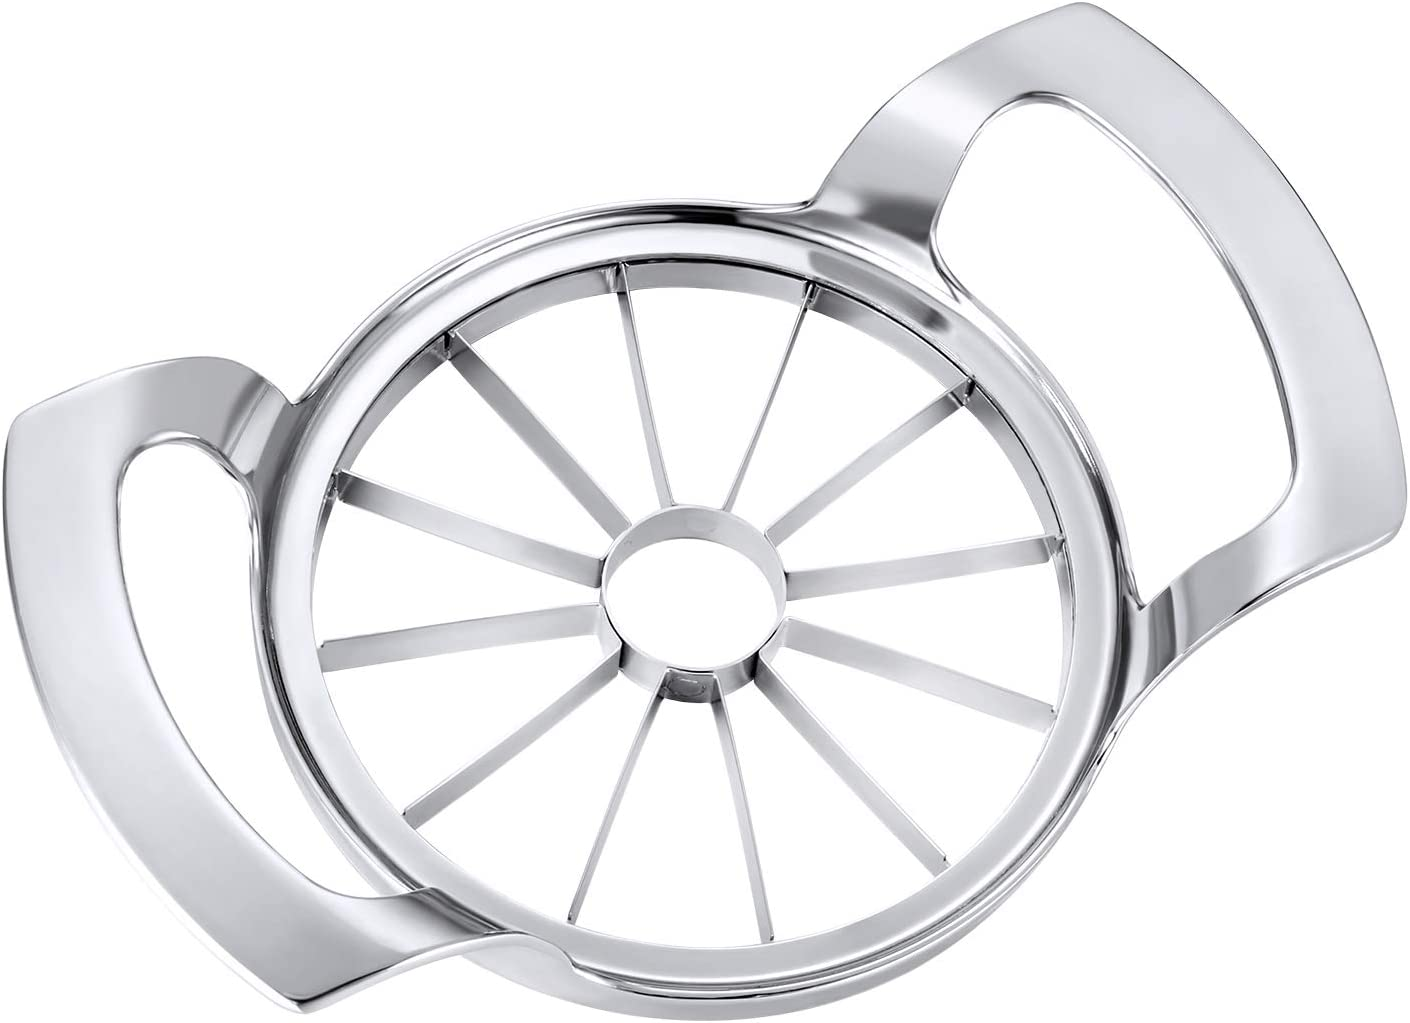 [Upgraded 2020] JOYIT Apple Slicer 12-Blade, Ultra-Sharp Stainless Steel Apple Cutter, Sturdy Large Apple Corer, Easy Grip Divider for Up to 4 Inches Apples Pears Potato Onion (12-Blade)